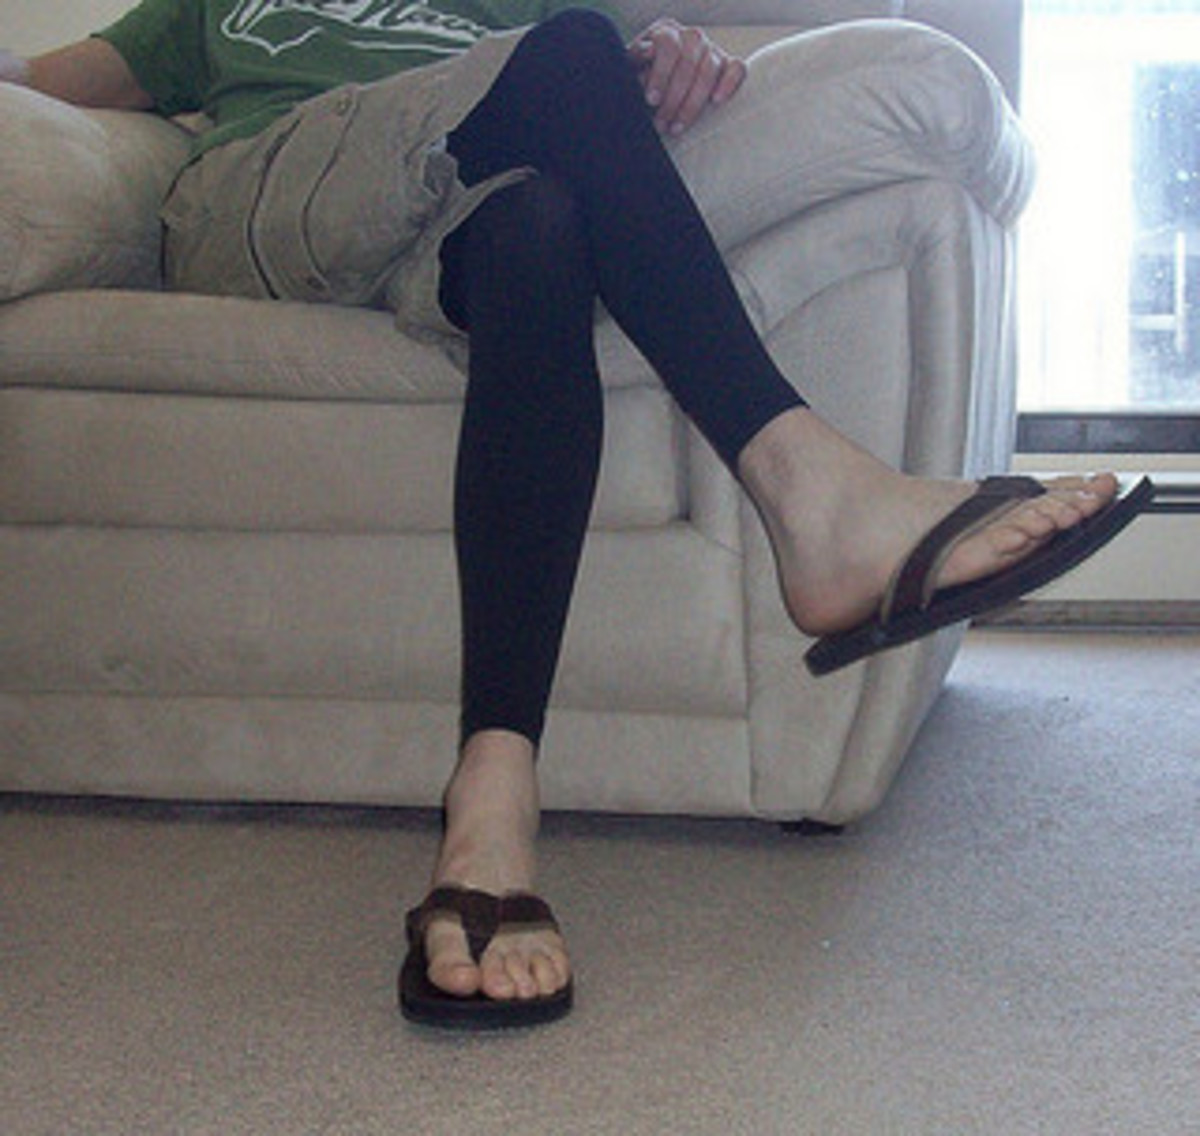 Black leggings worn with cargo shorts and sandals.